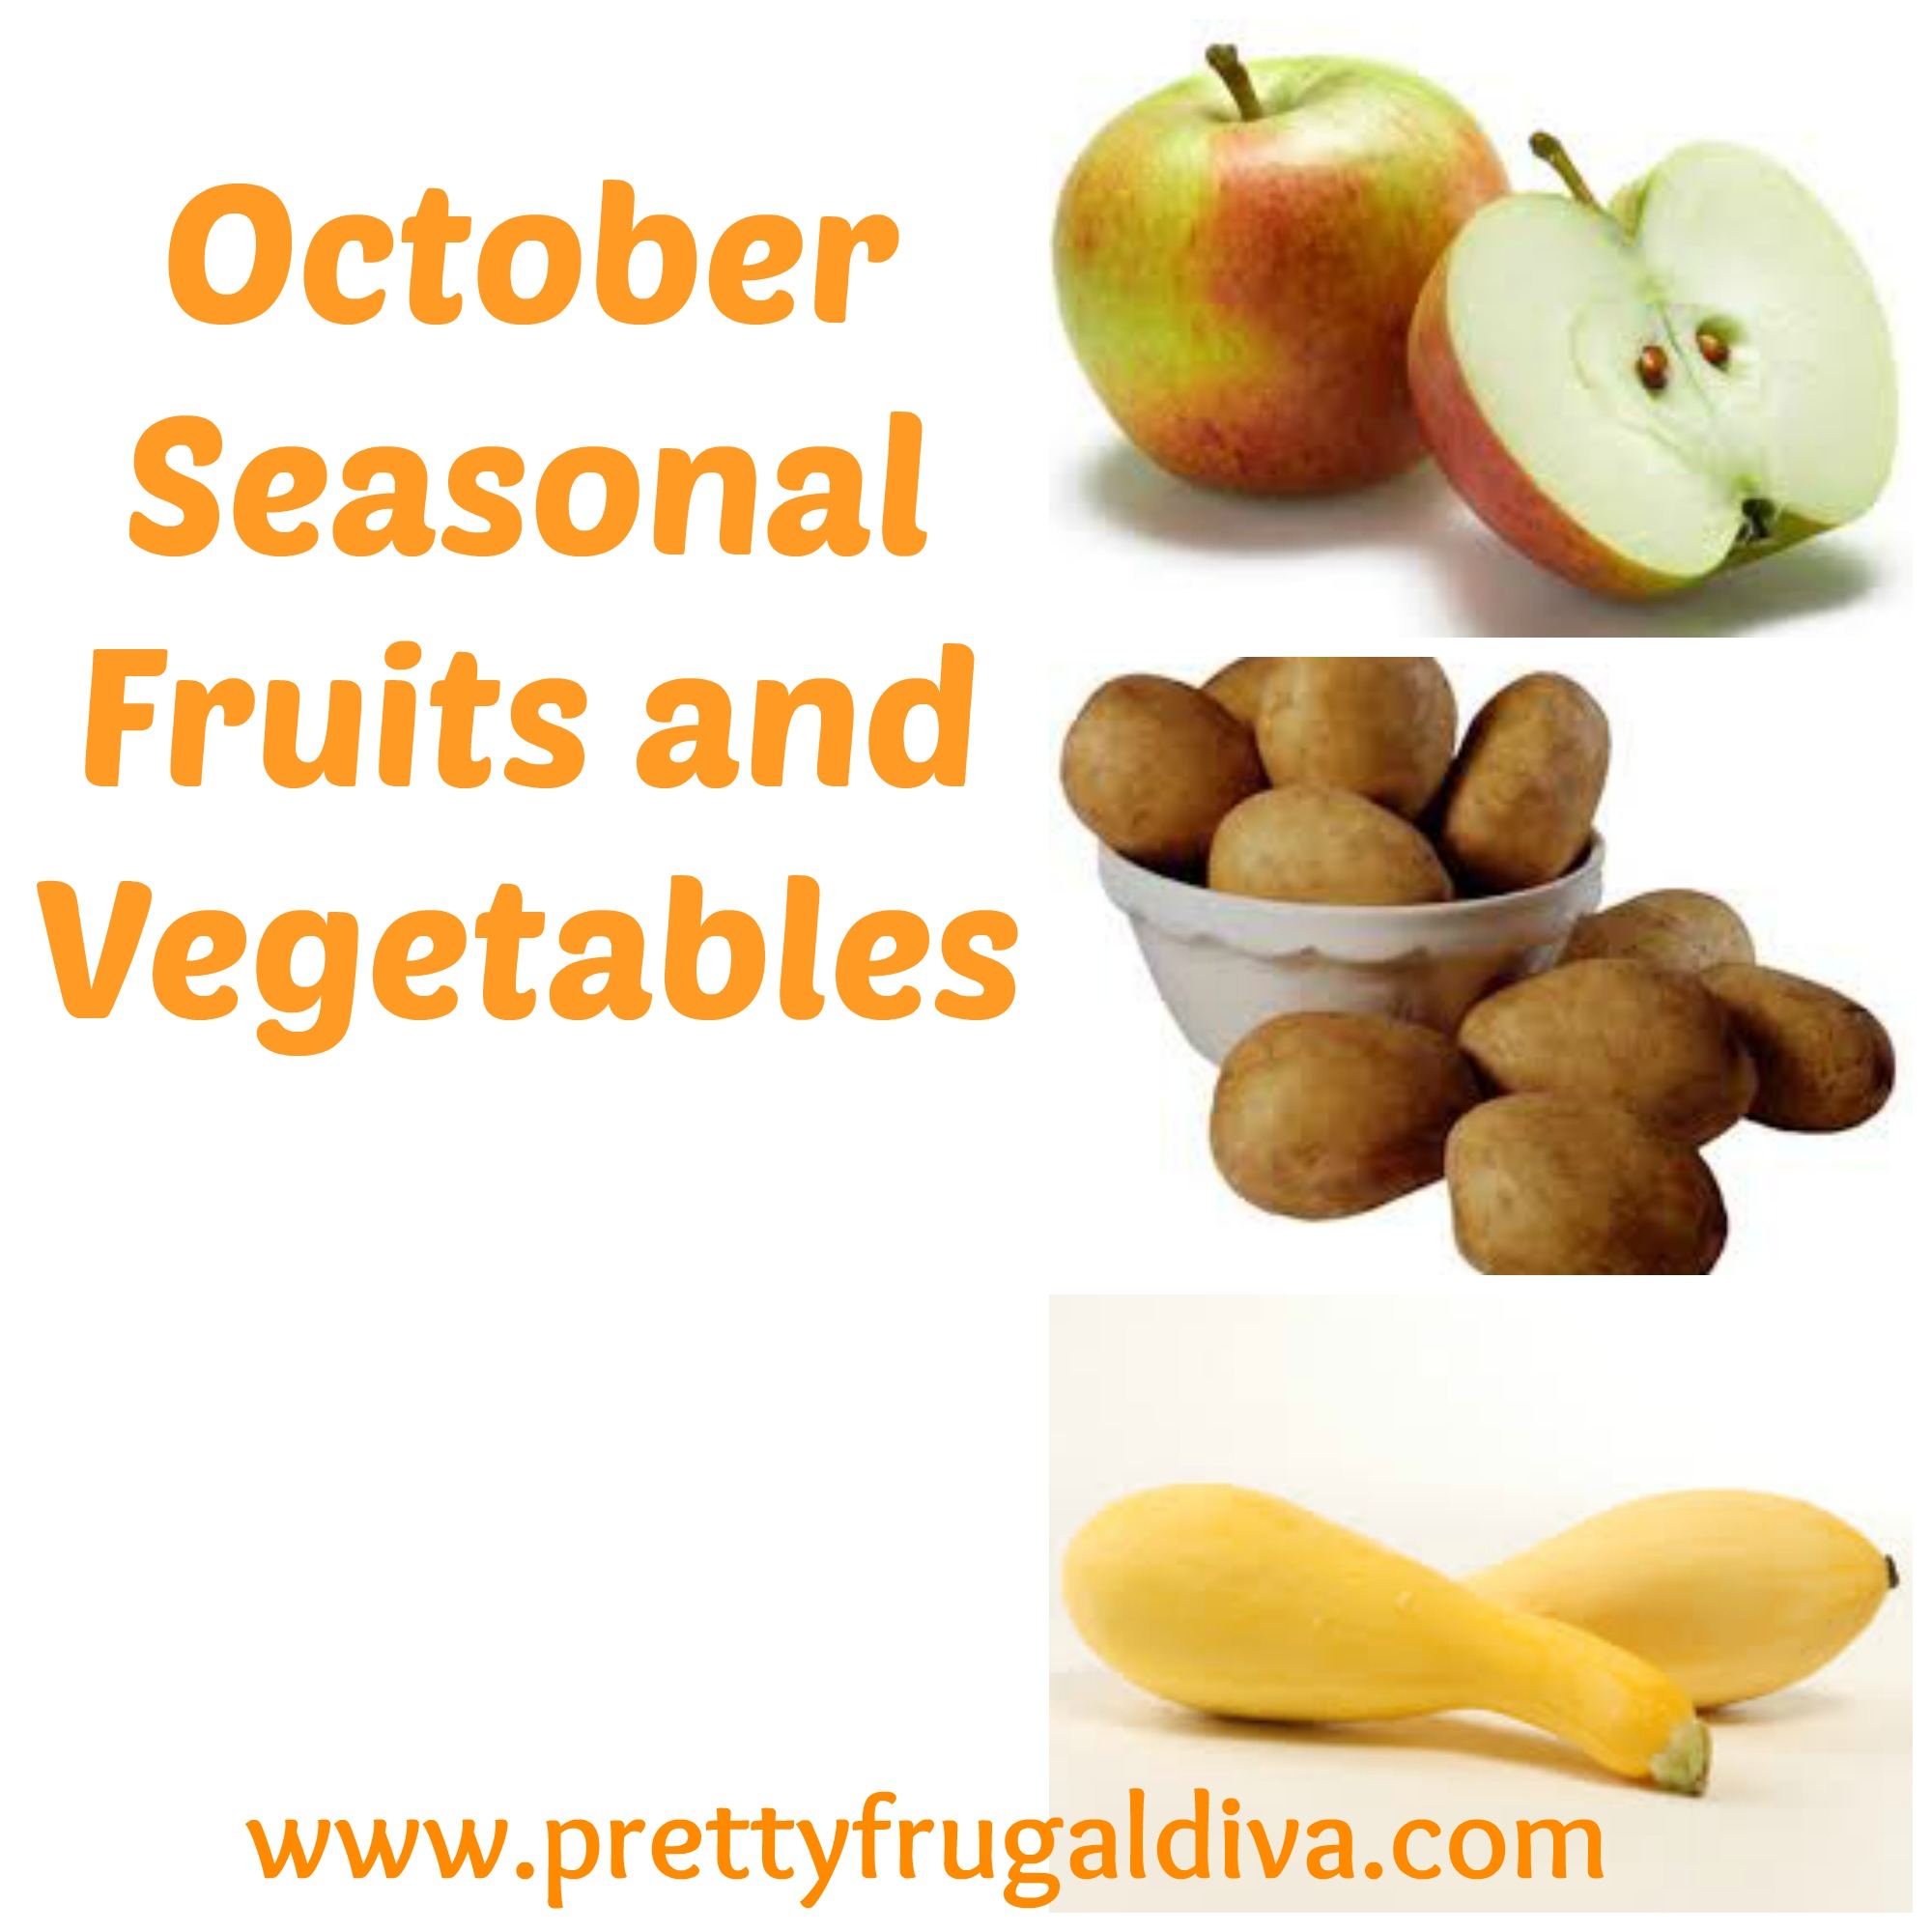 October Seasonal Fruits and Vegetables